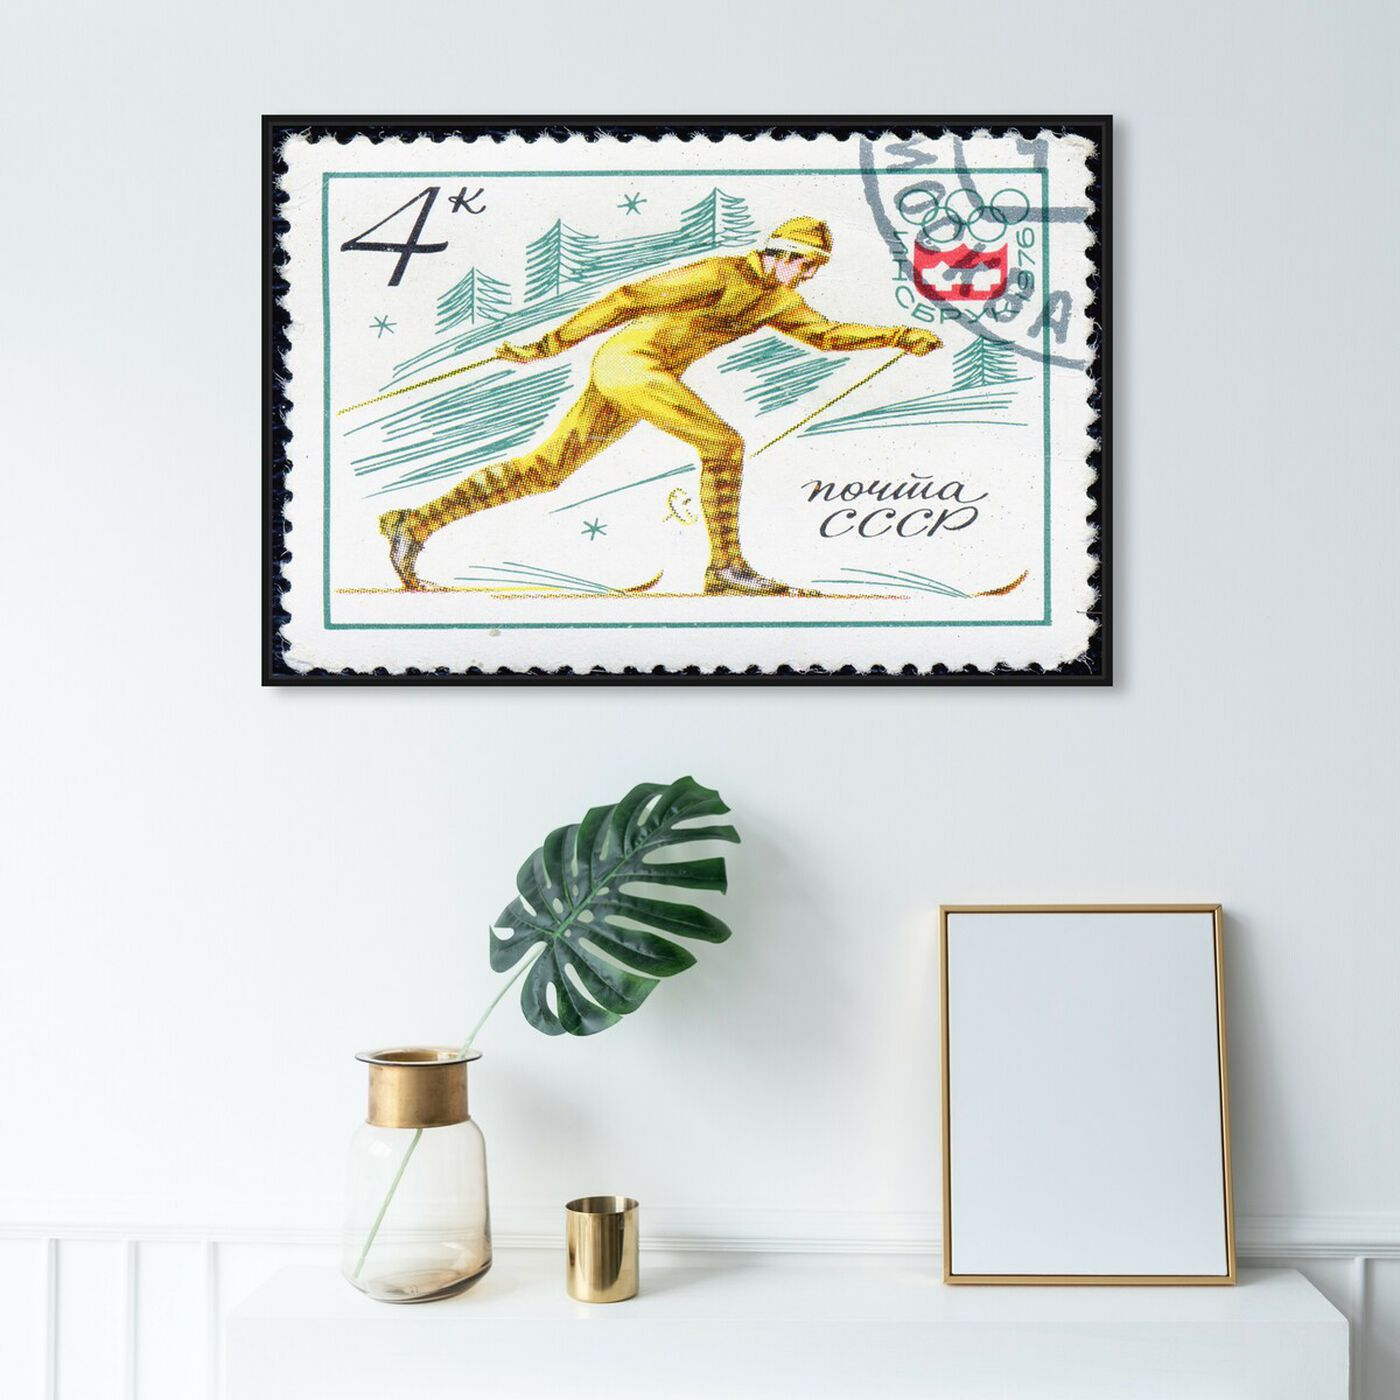 Hanging view of 1976 XII featuring sports and teams and skiing art.